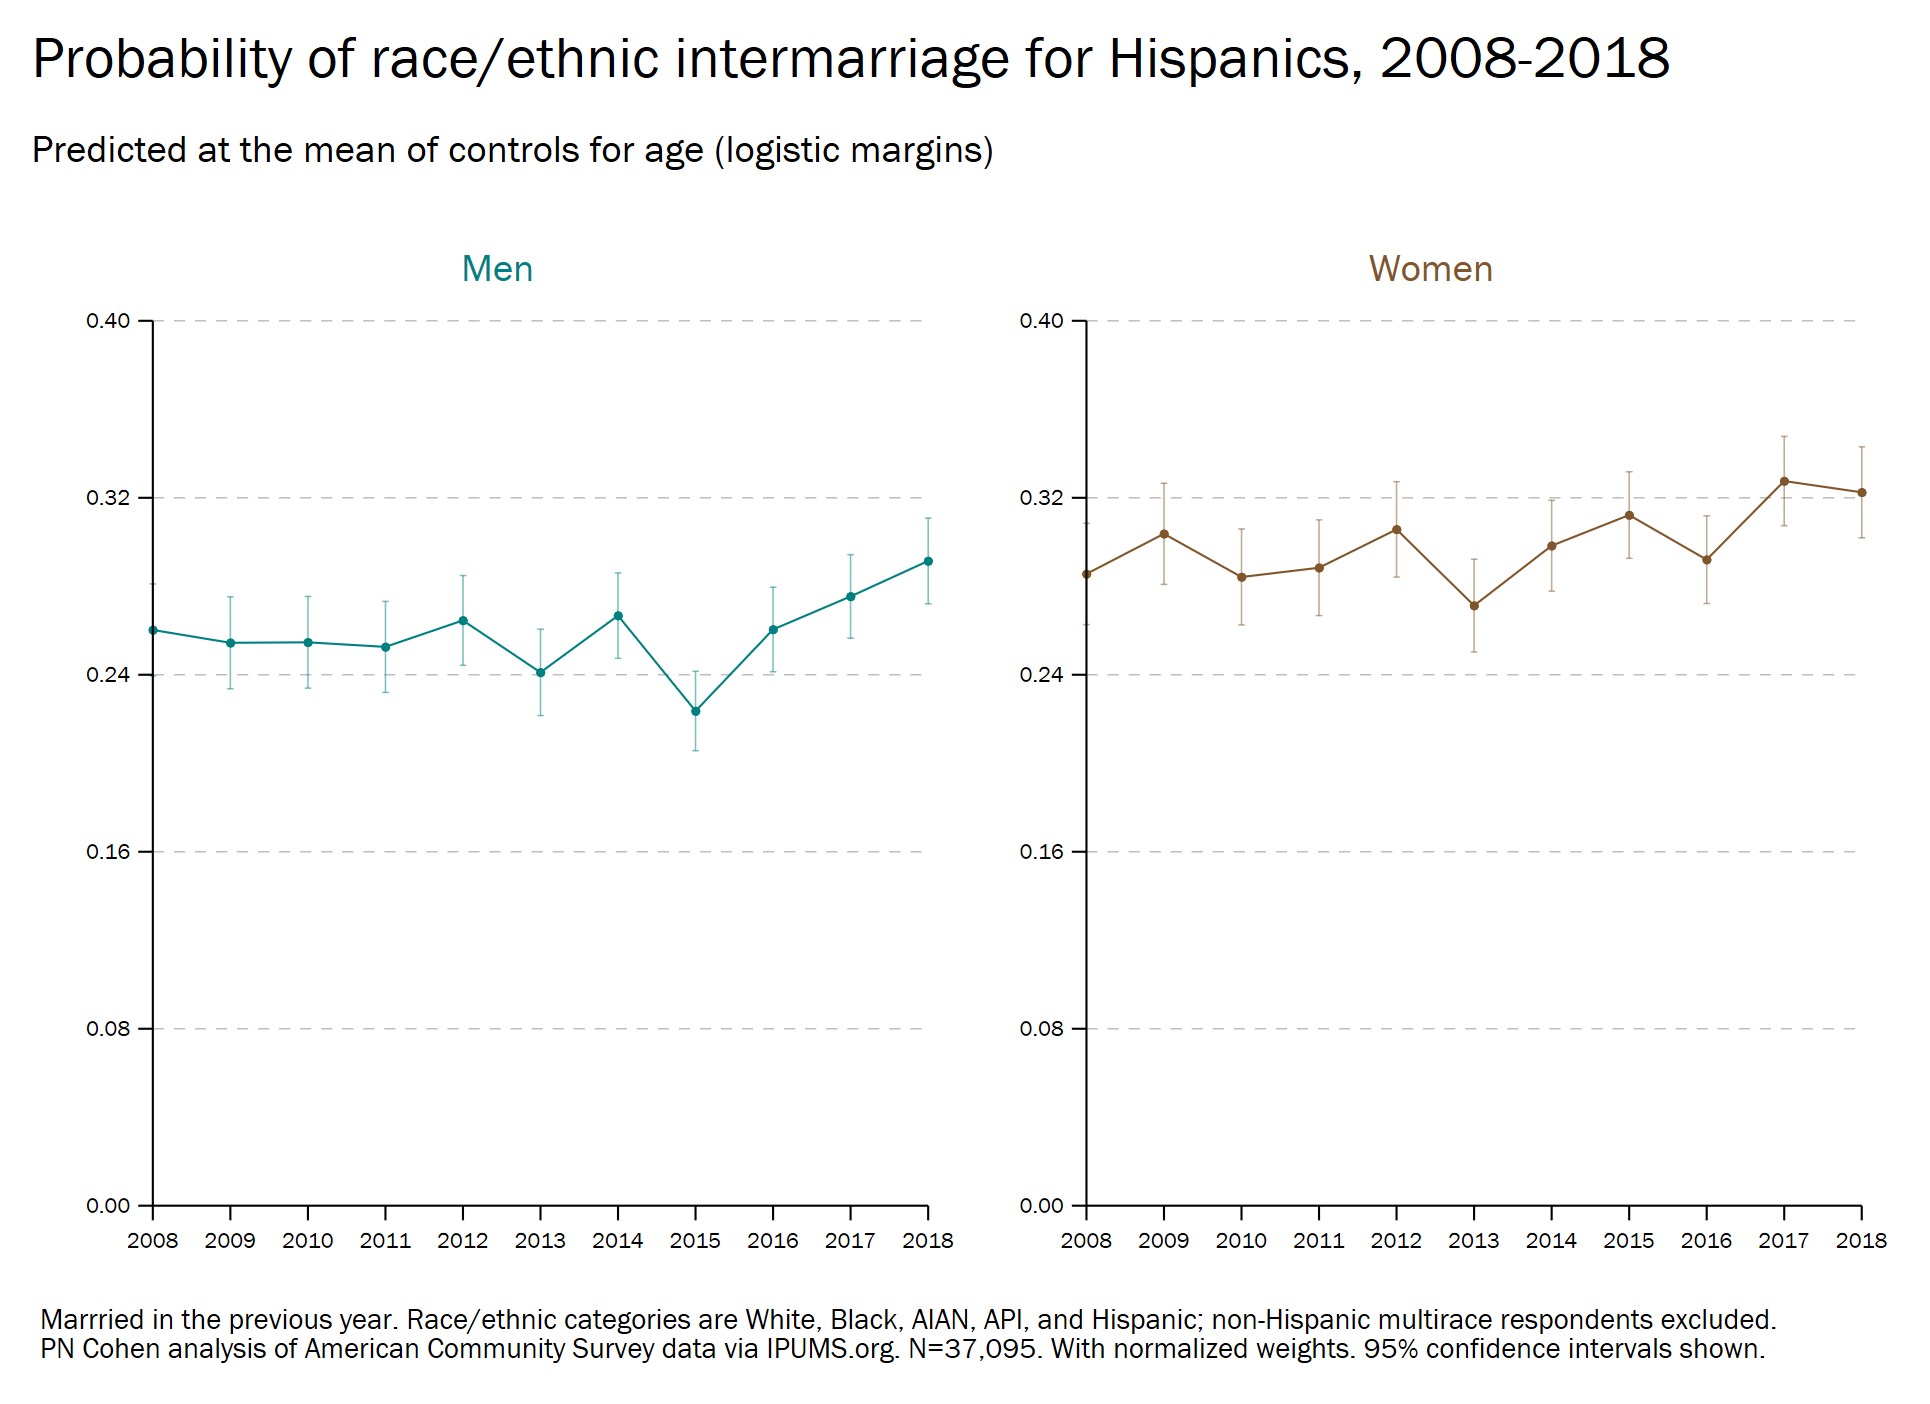 hispanic intermarriage